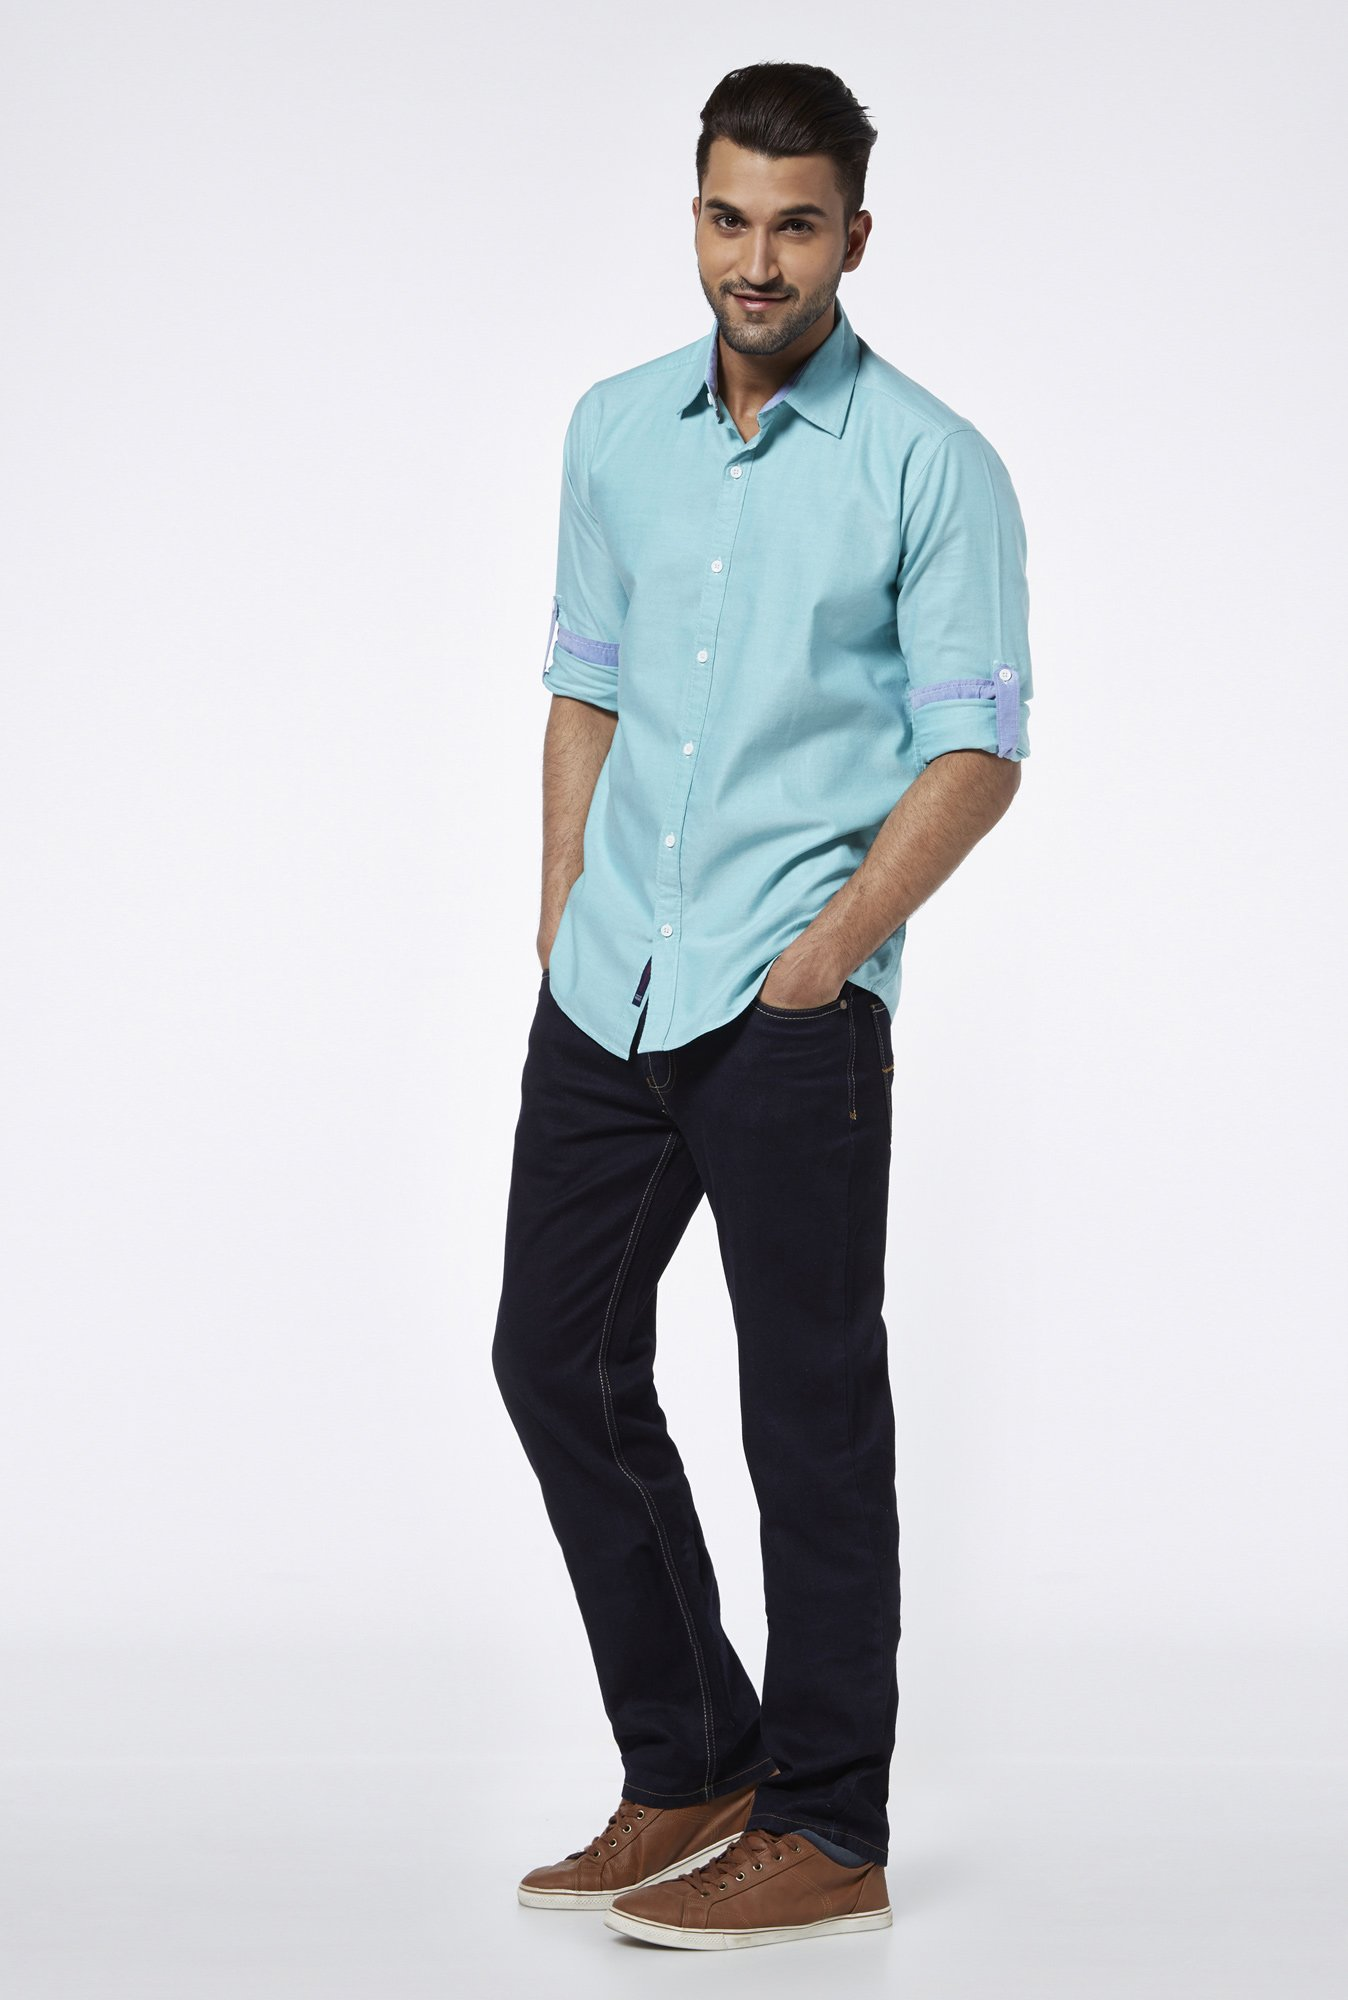 Provogue Teal Slim Fit Shirt